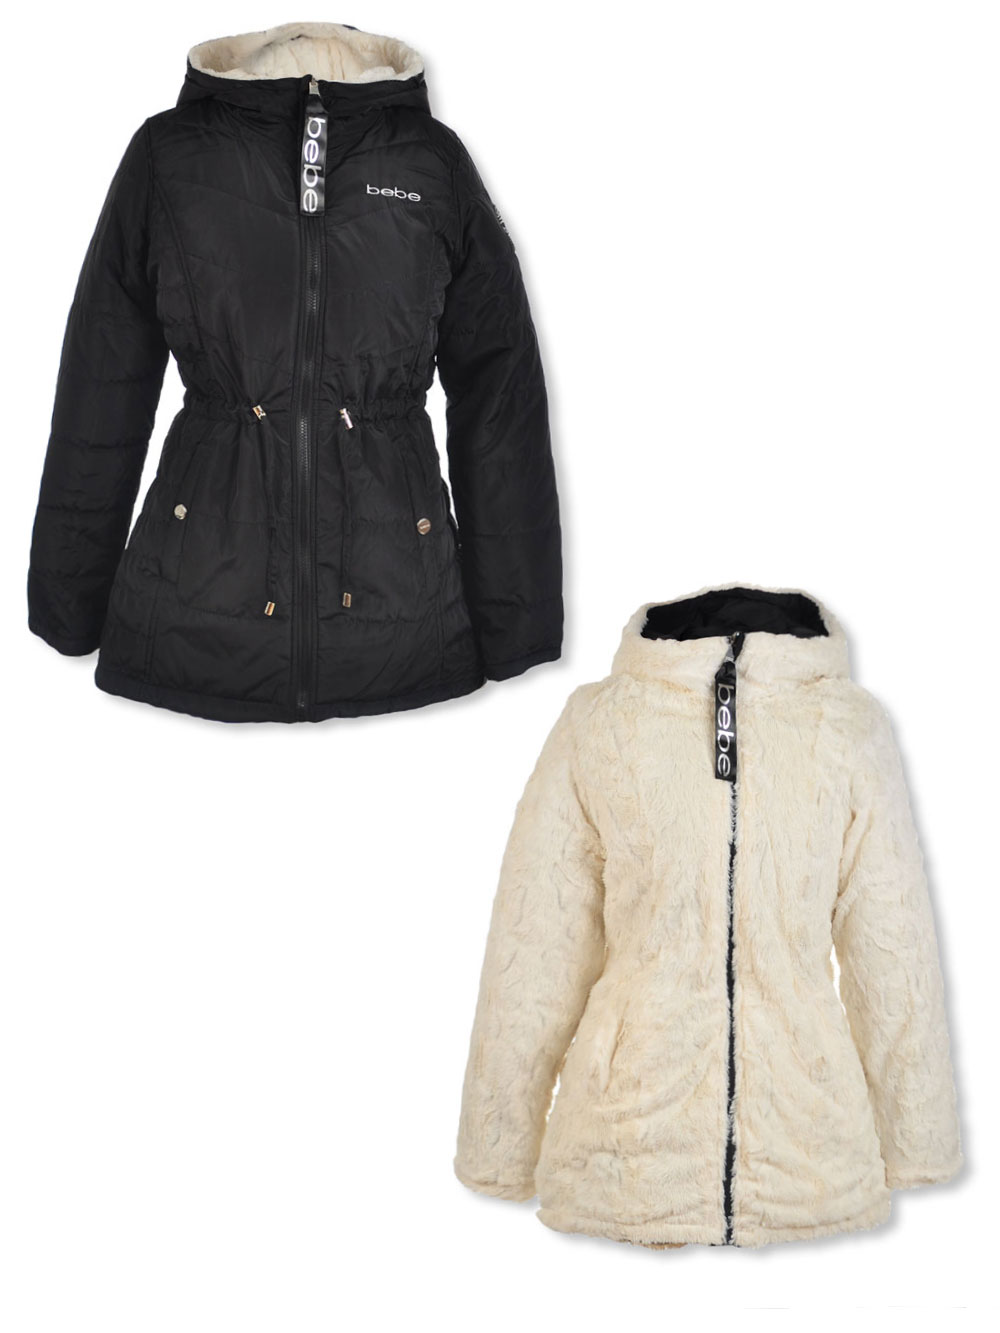 Bebe Jackets and Coats